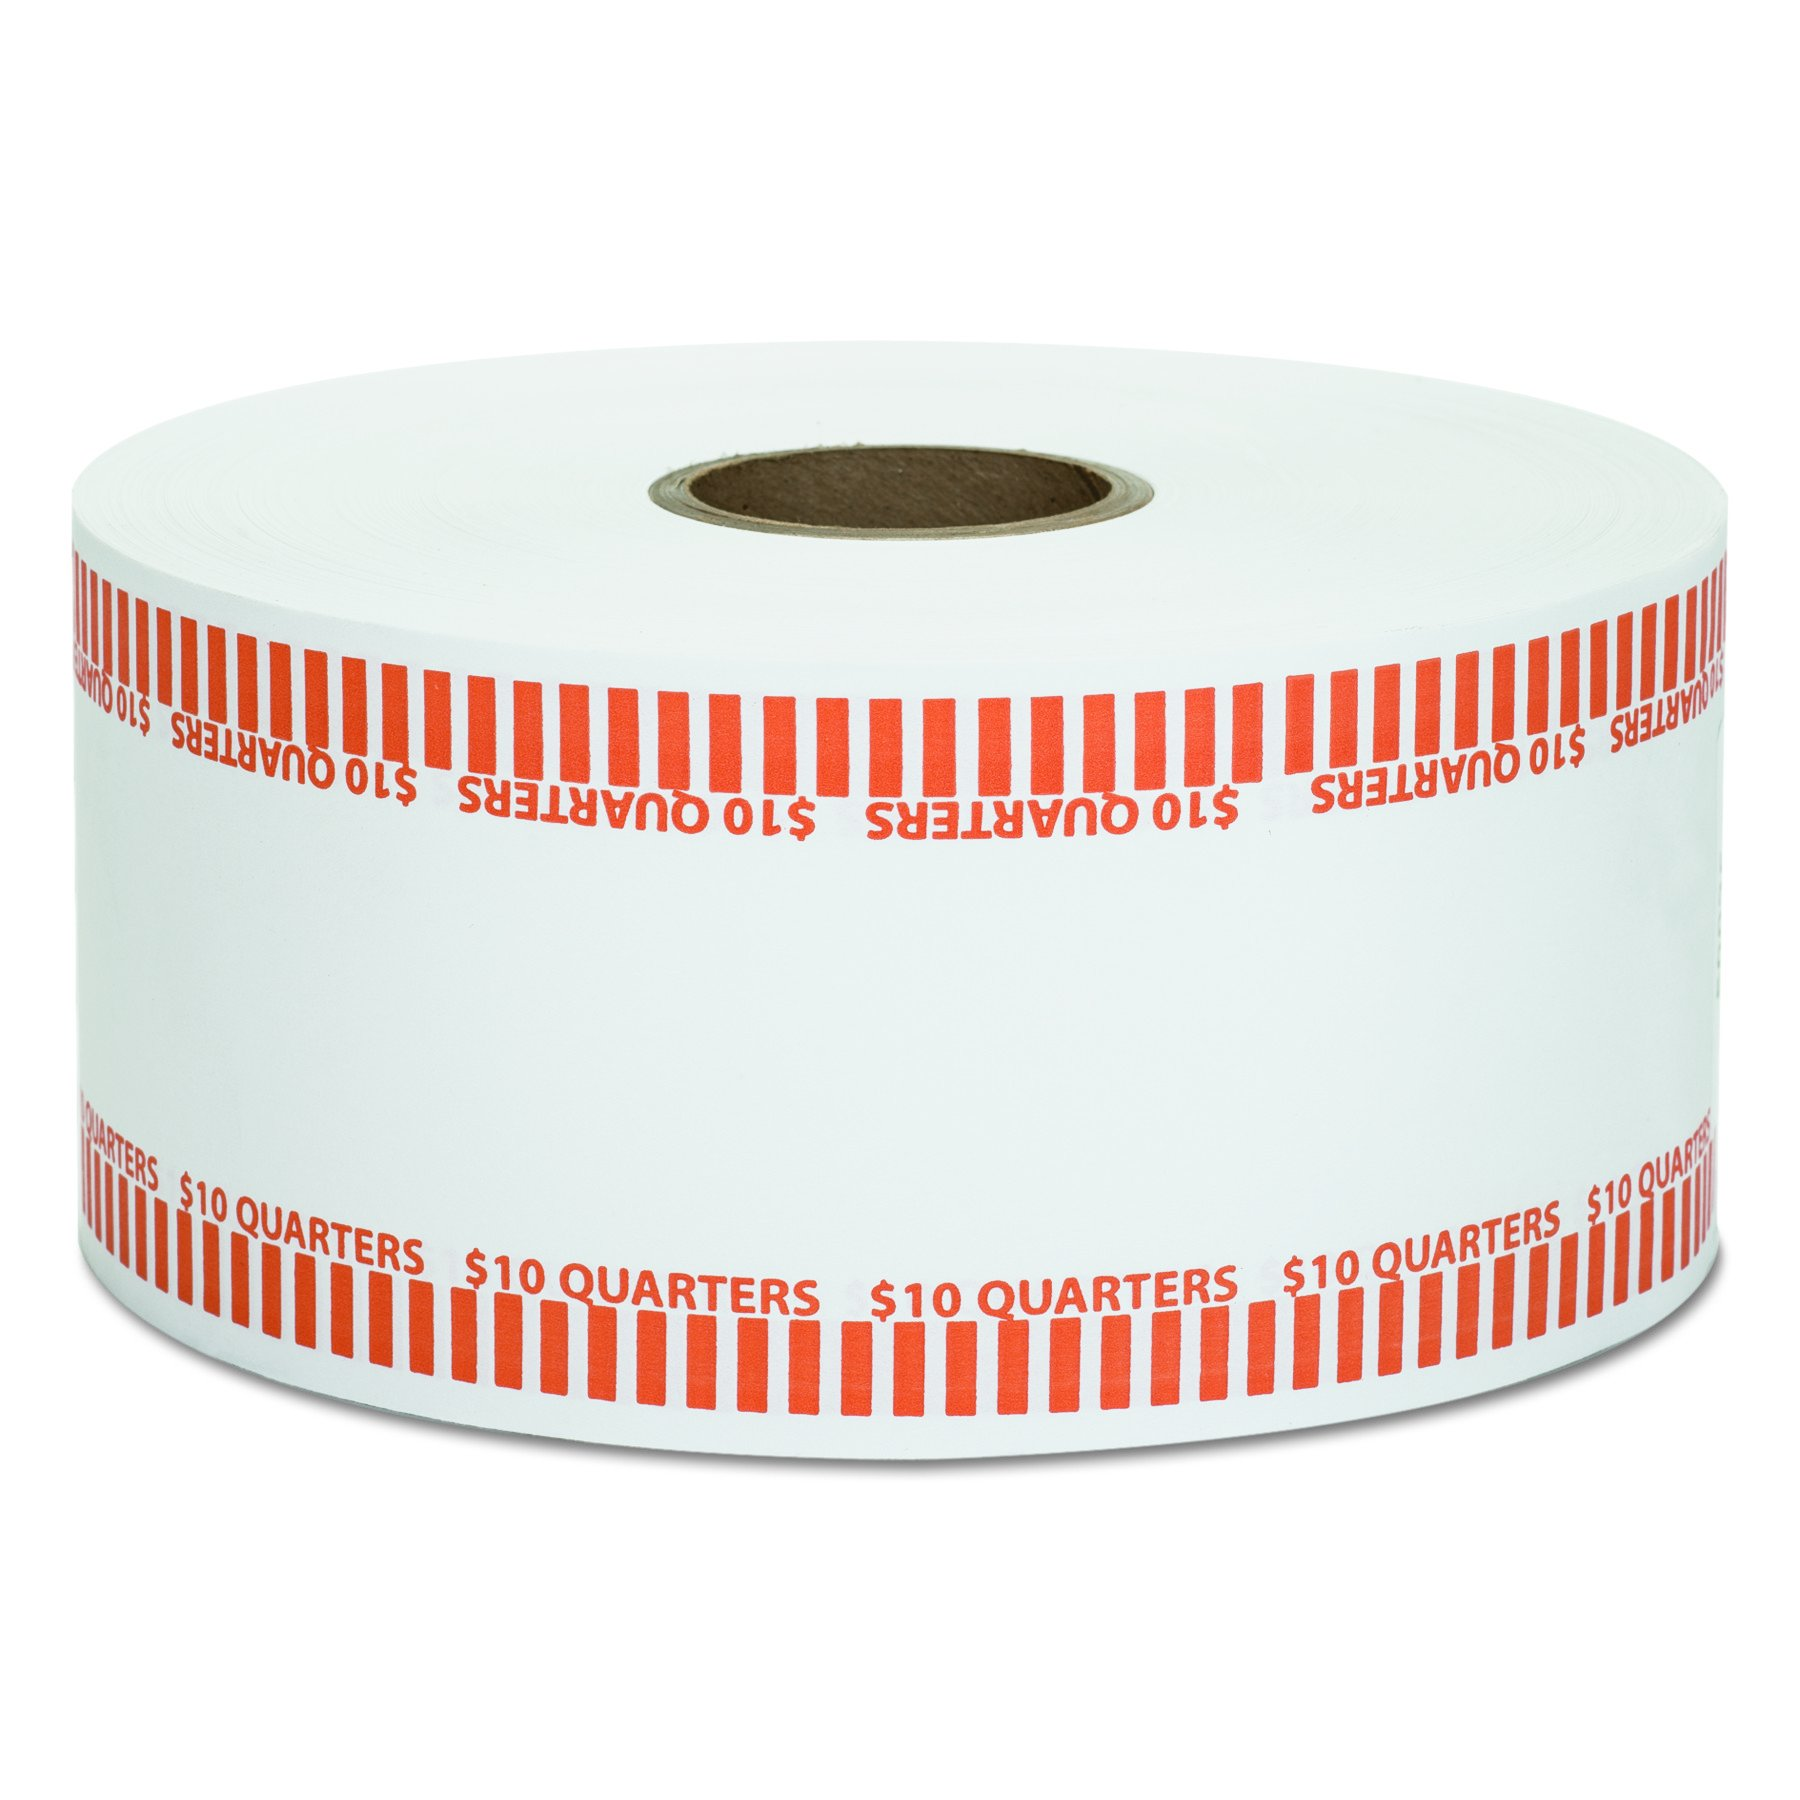 Coin-Tainer 50025 Automatic Coin Rolls, Quarters, $10, 1900 Wrappers per Roll by MMF Industries (Image #2)